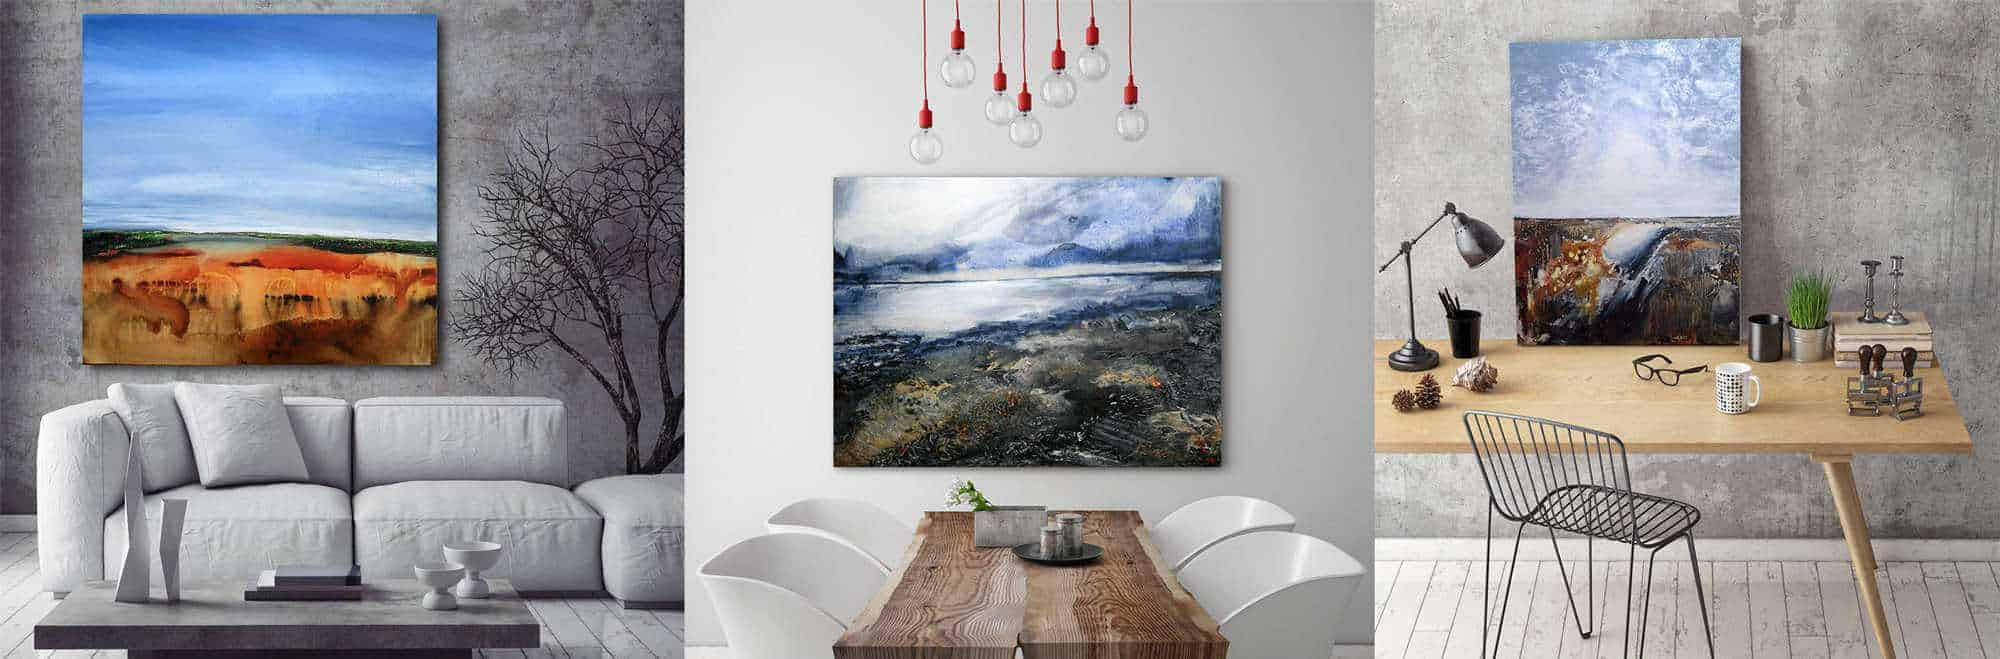 SHOP FOR CONTEMPORARY & MODERN ART THAT FITS YOUR HOME